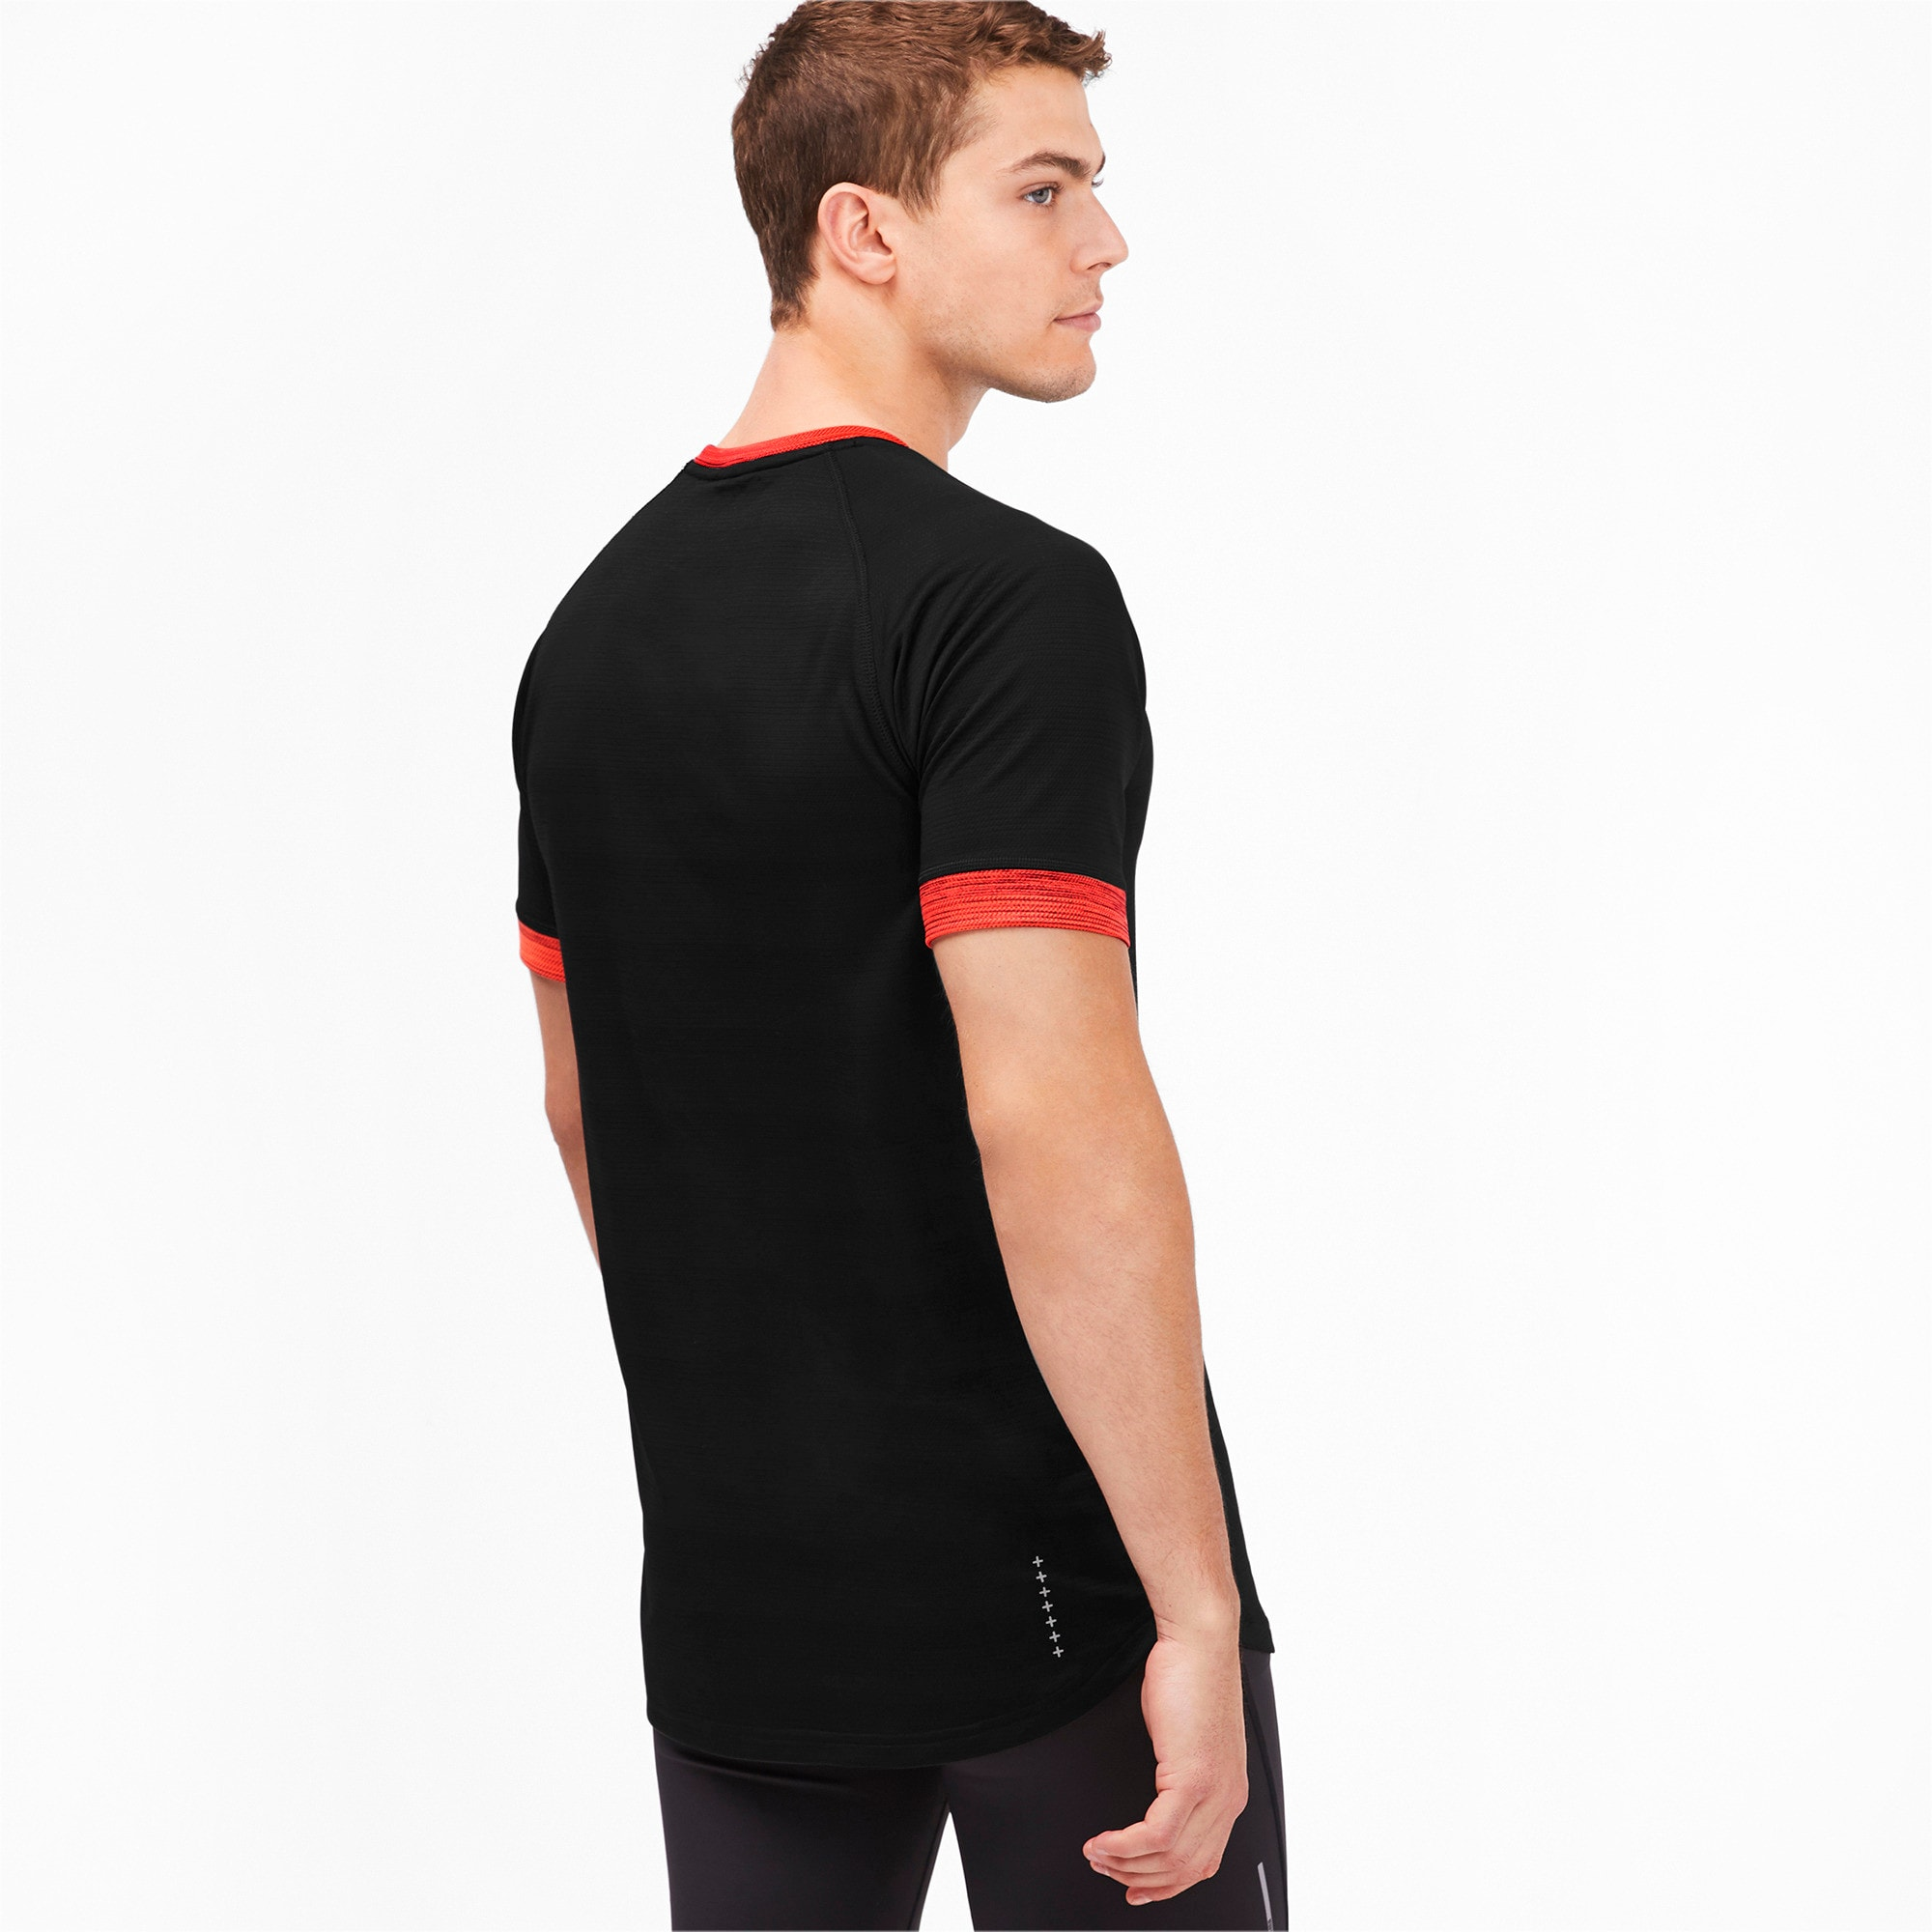 Thumbnail 2 of GET FAST THERMO-R+ SS ランニング Tシャツ 半袖, Black Htr-Nrgy Red Htr, medium-JPN